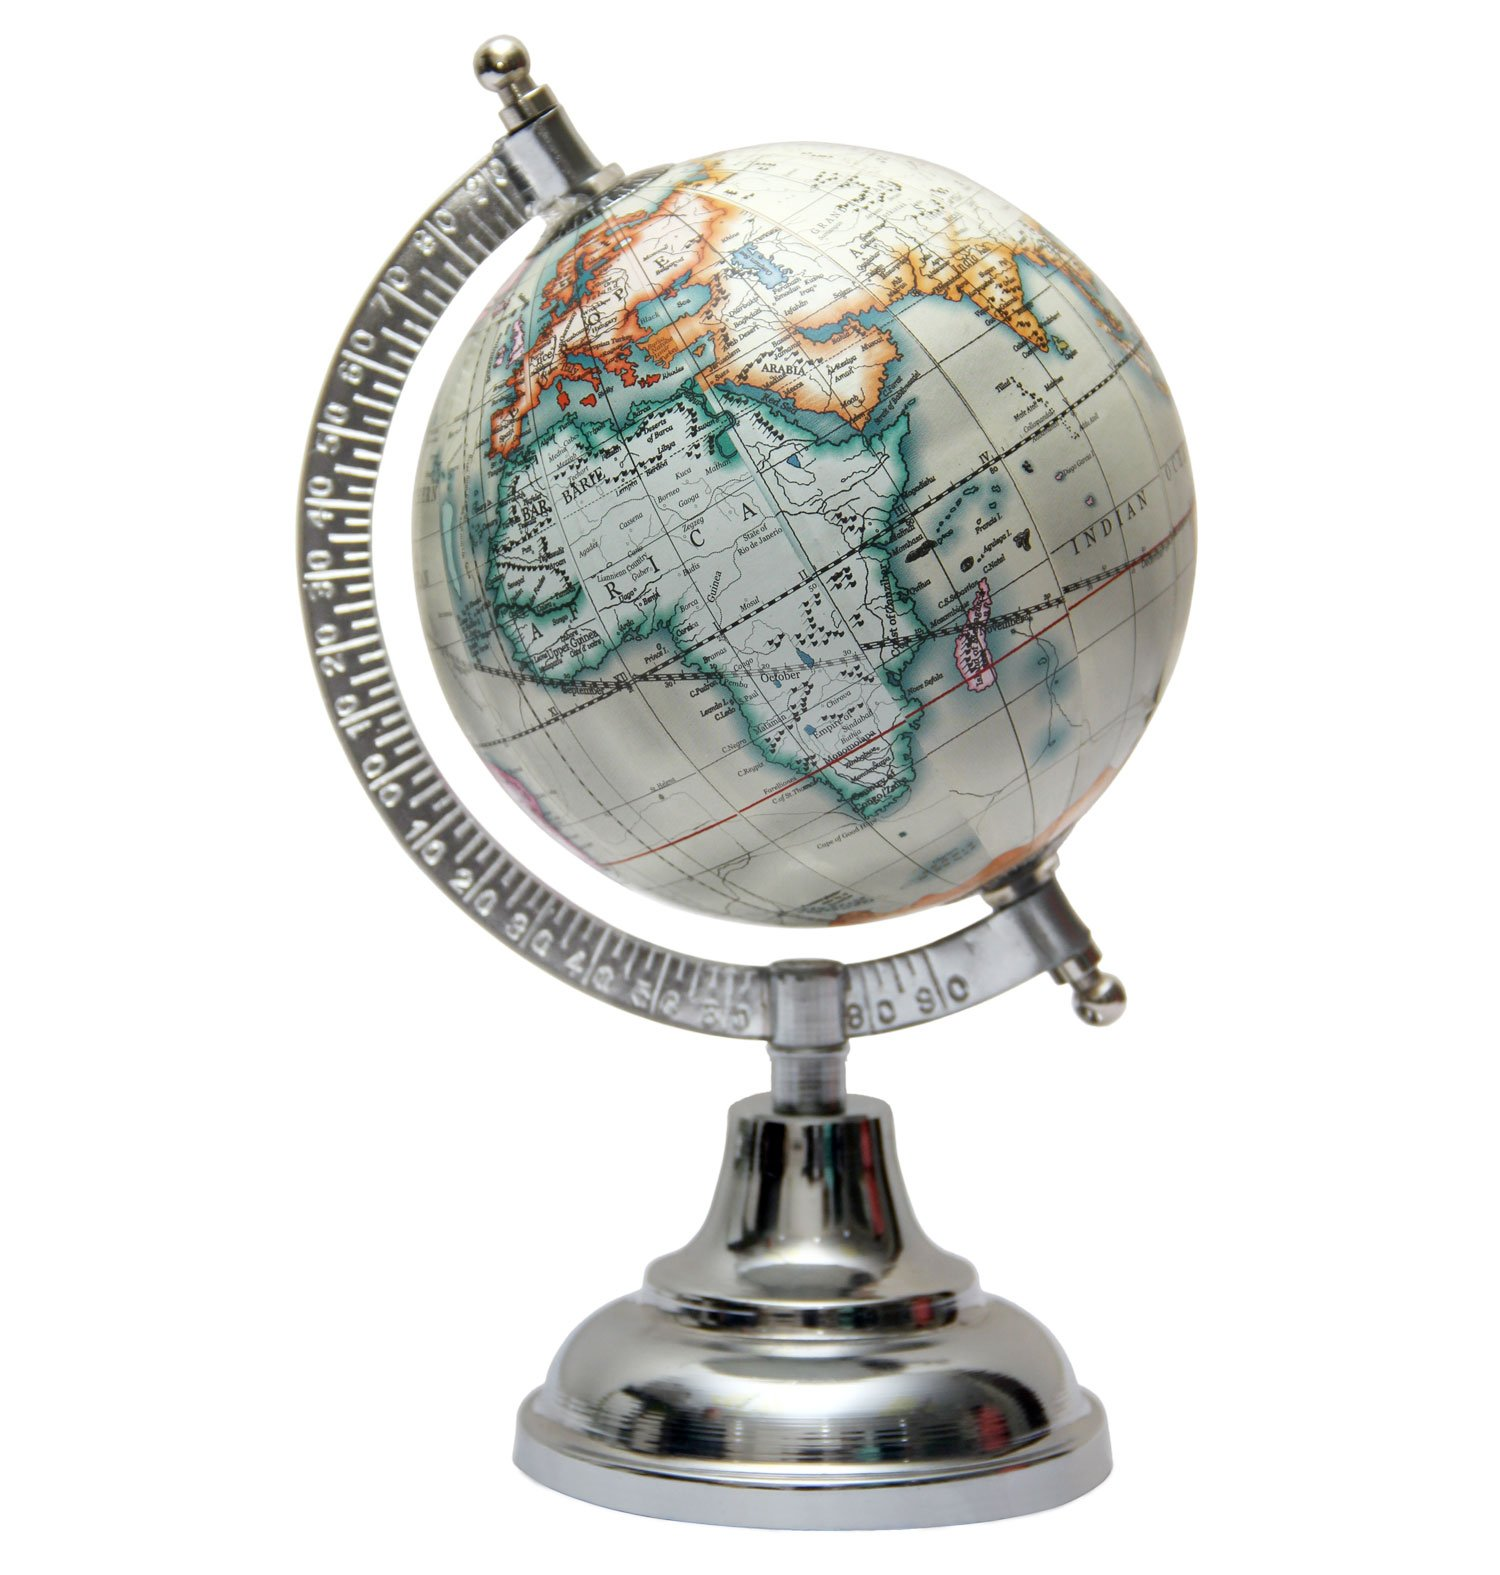 MasterpieceIndia 5 Inches Diameter World Earth Desktop Gift Decor Office Home Decorative Tabletop Globe (Off-White1)